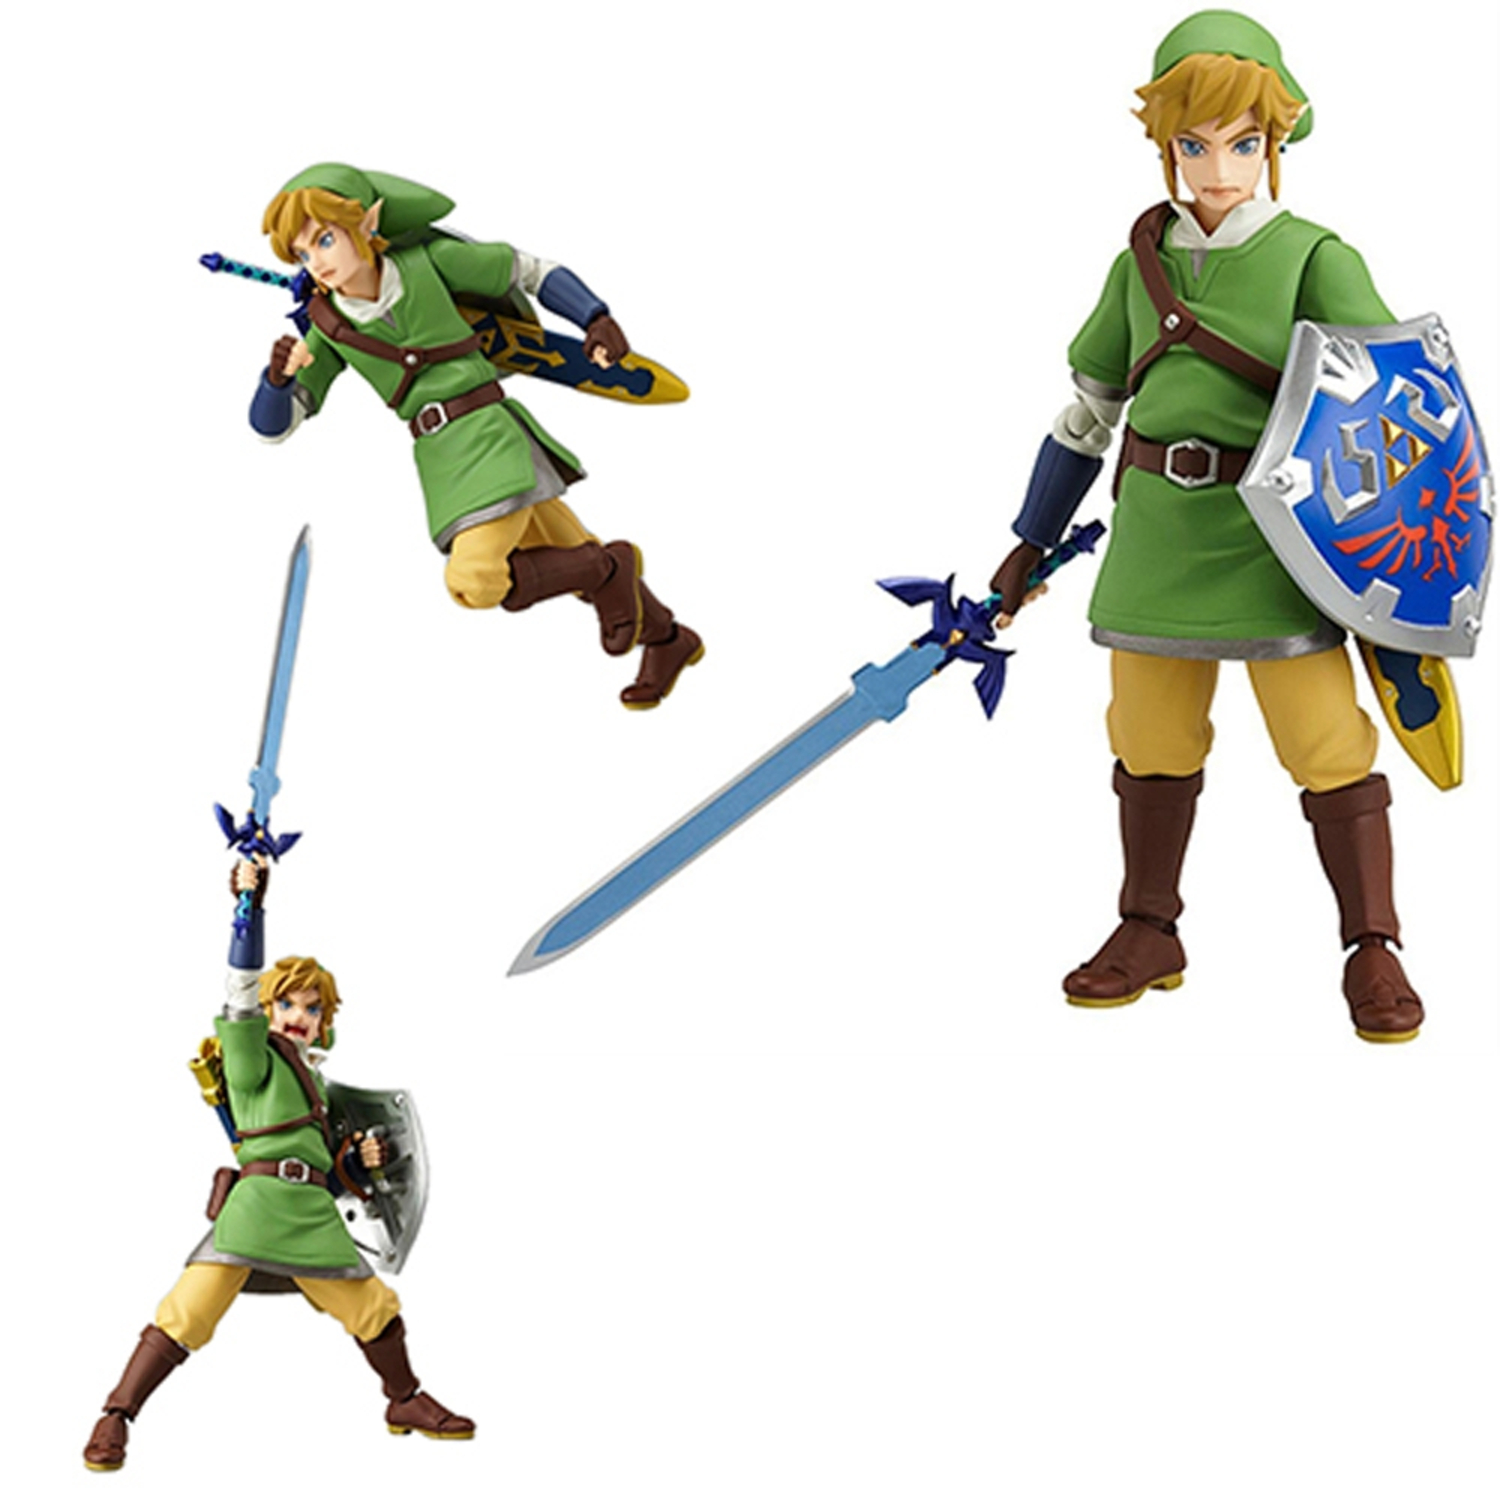 Toy - Figma - Vinyl Figure - Link The Legend of Zelda - Skyward Sword Figure (Gift Idea)